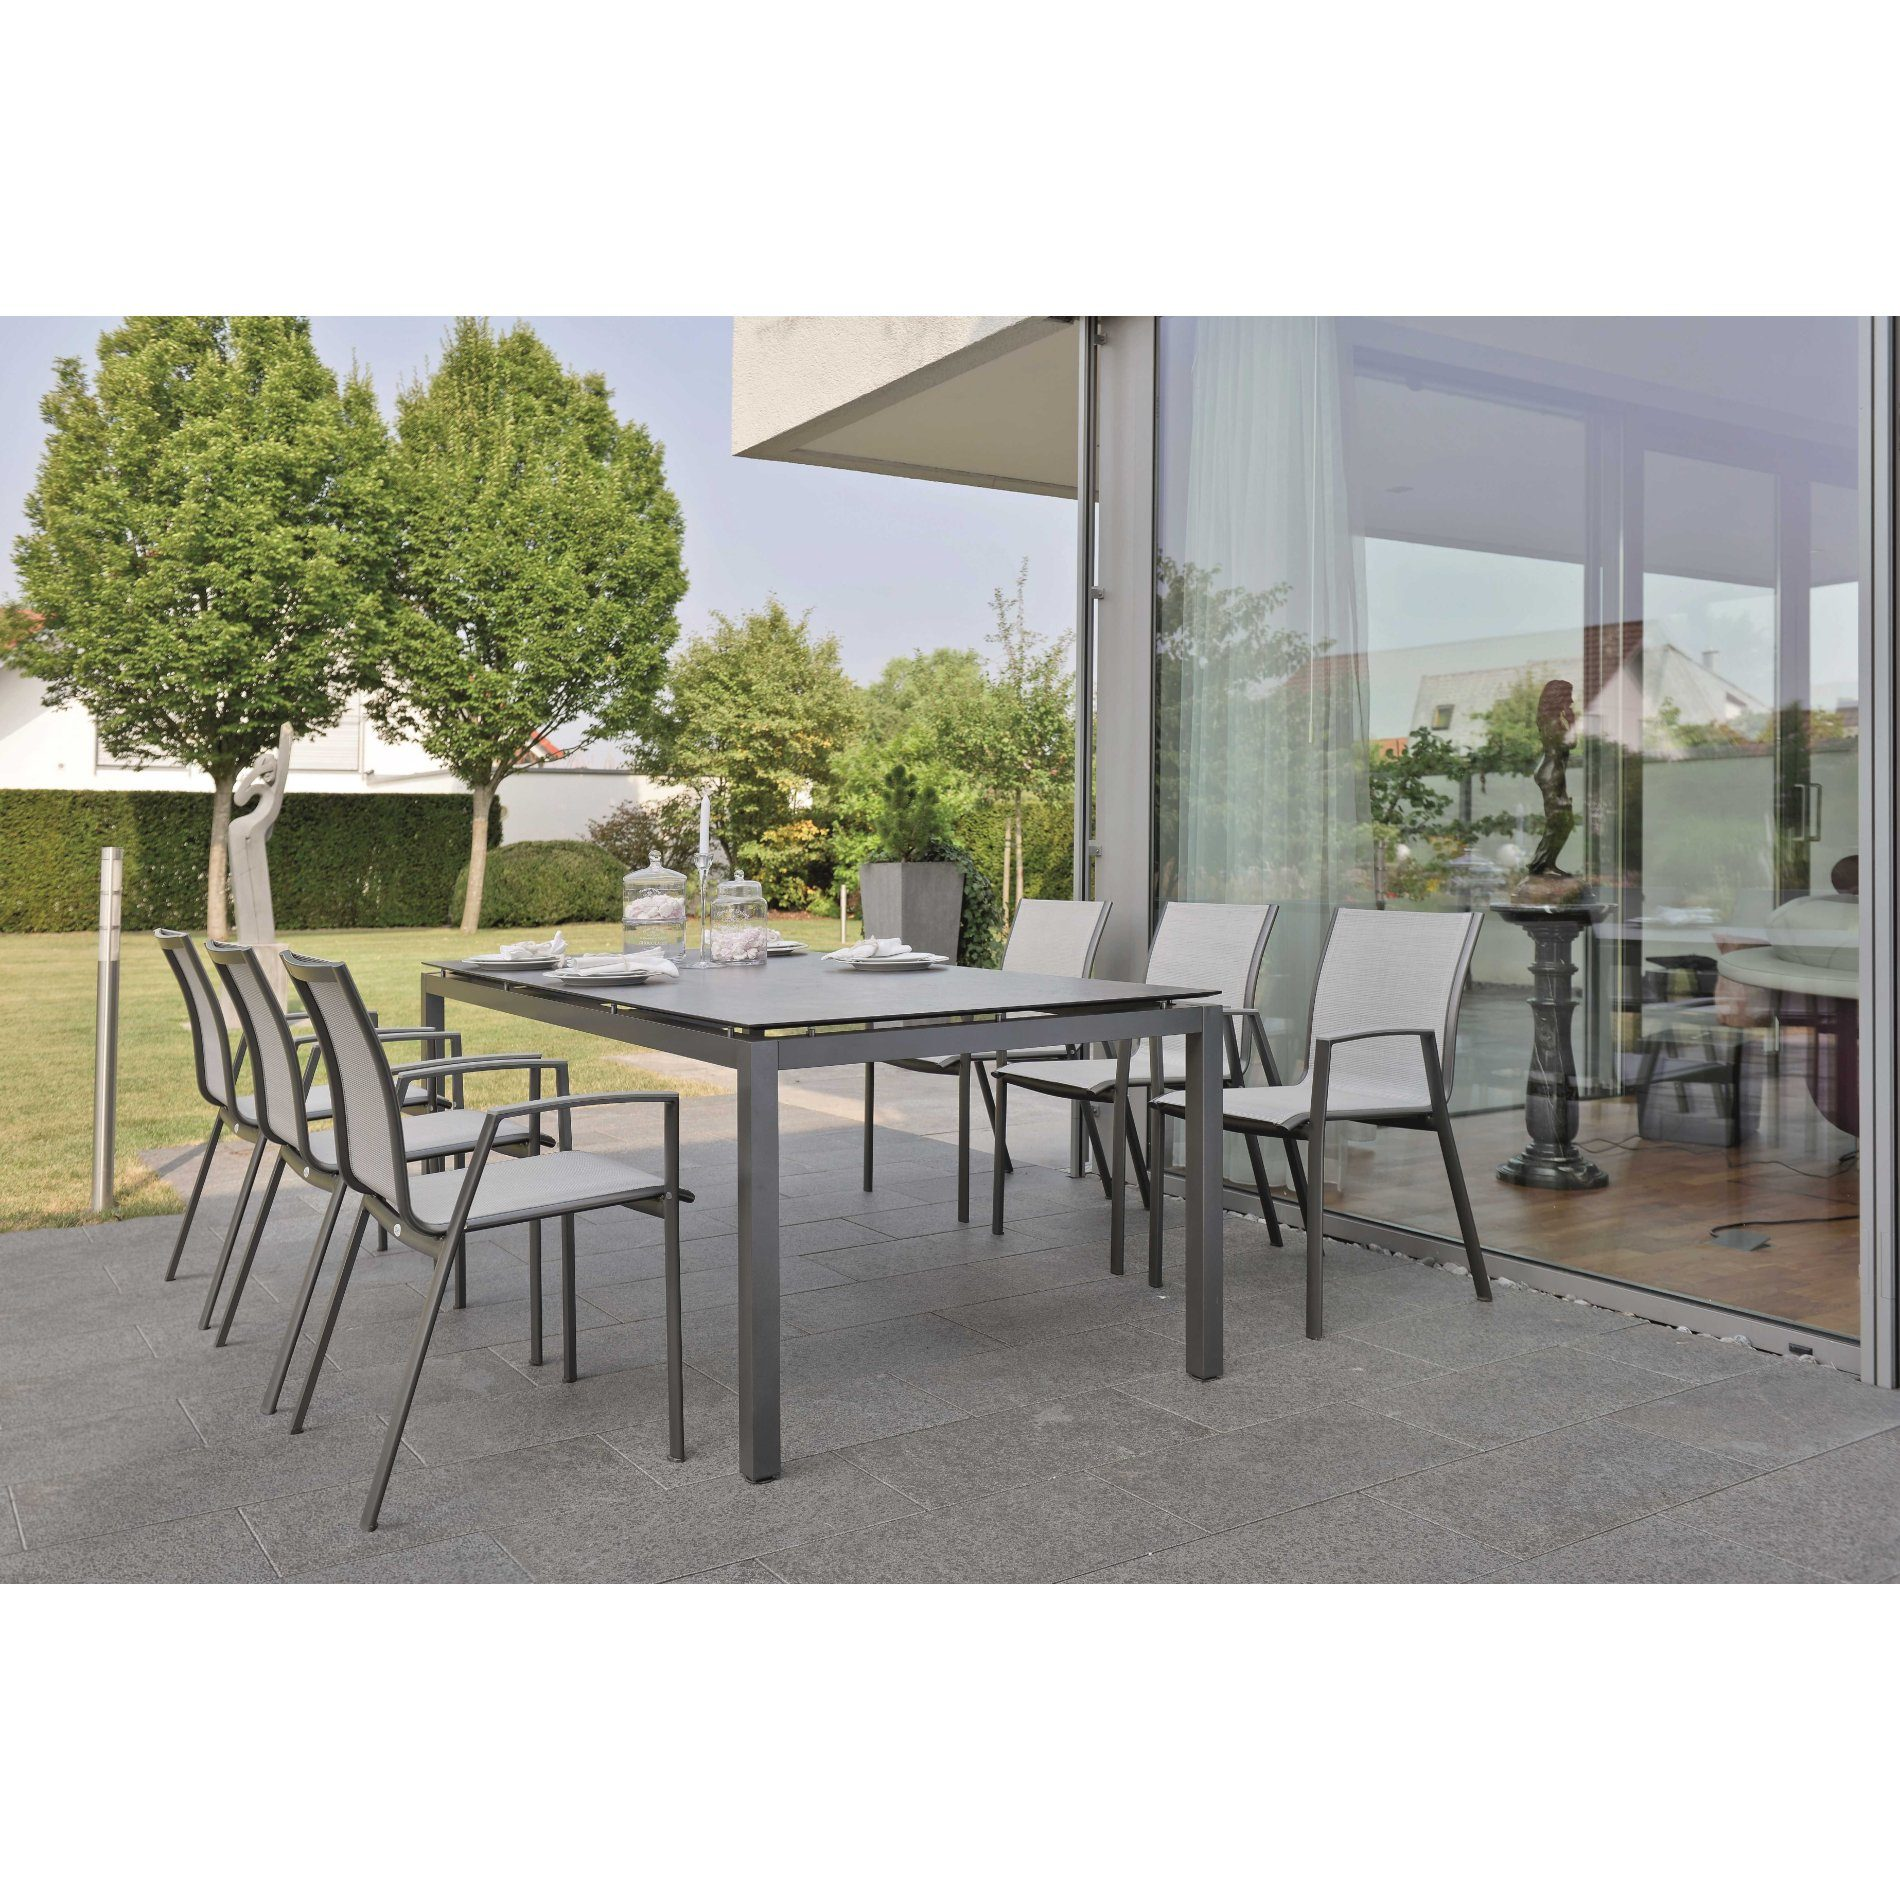 stern gartenm bel set mit stuhl ron und tisch aluminium anthrazit hpl zement. Black Bedroom Furniture Sets. Home Design Ideas